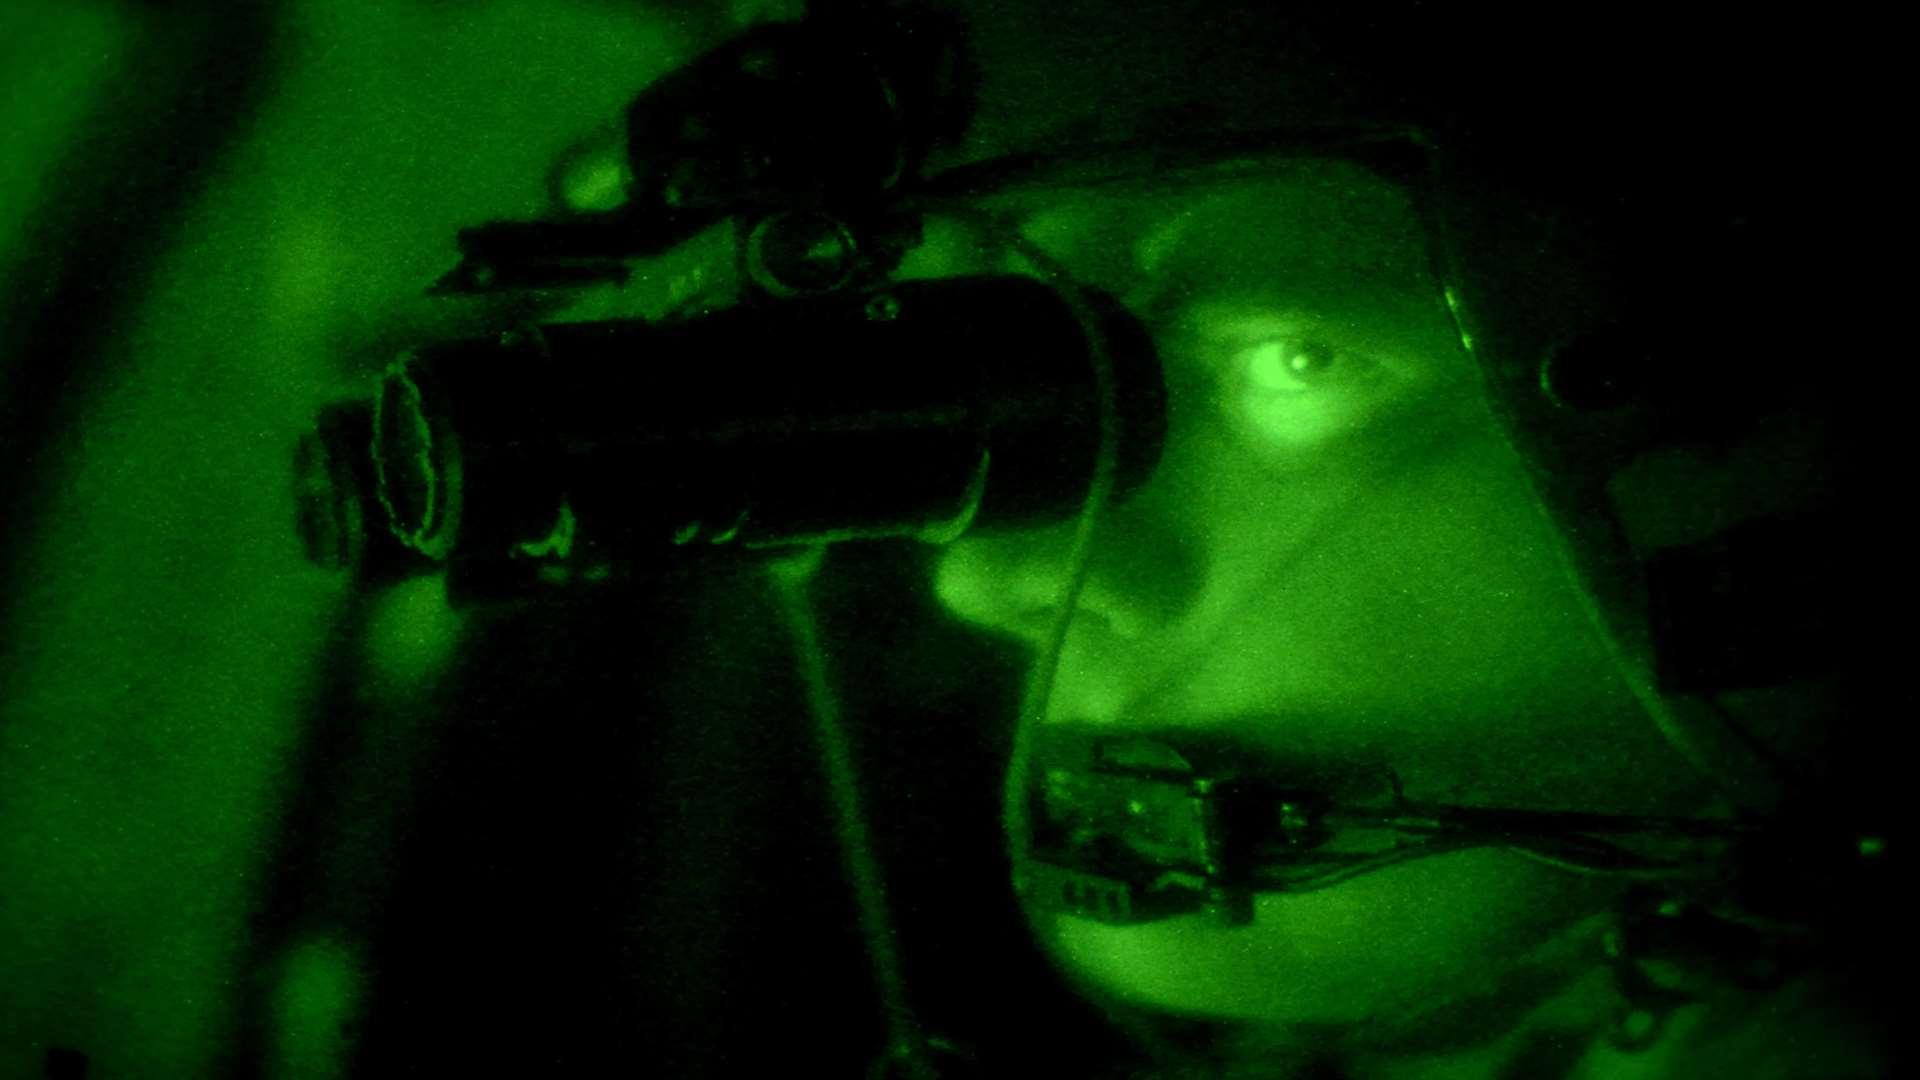 Pyser-SGI makes night-vision technology for the likes of the Ministry of Defence